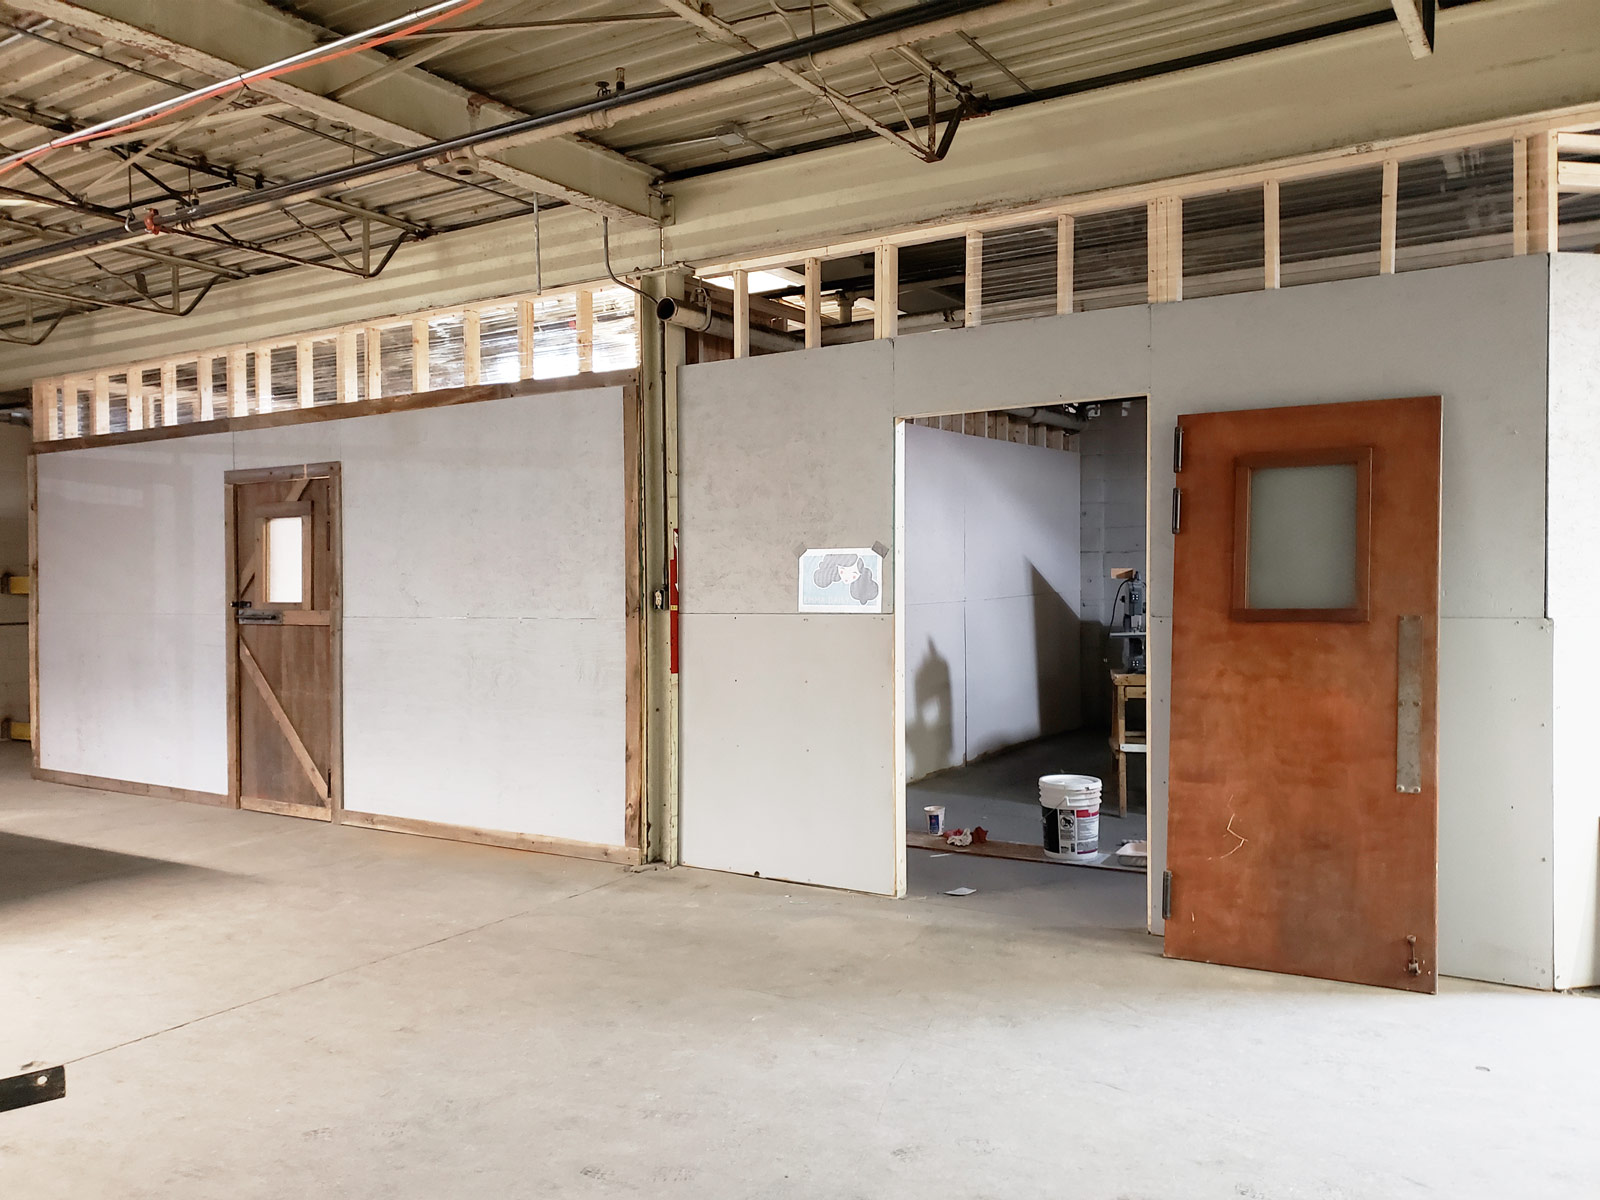 Two drywalled studios, nearing completion